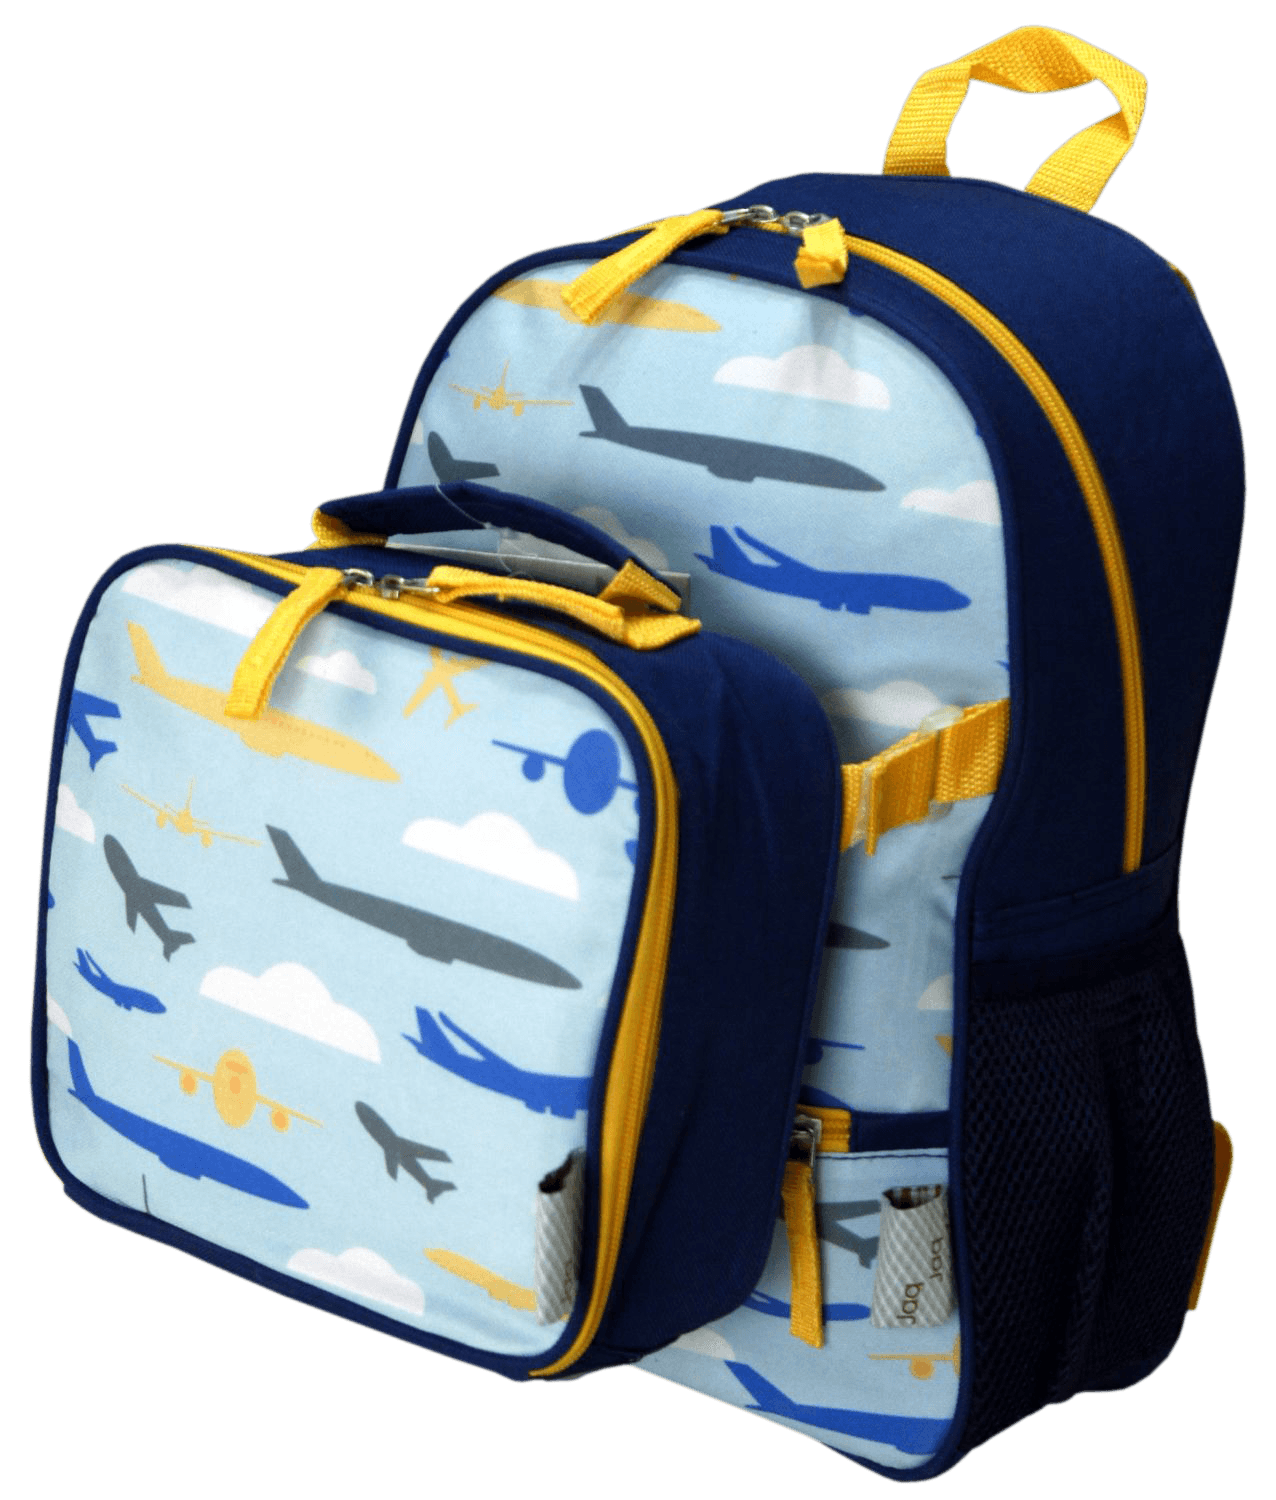 Backpack And Lunch Box Png Transpa